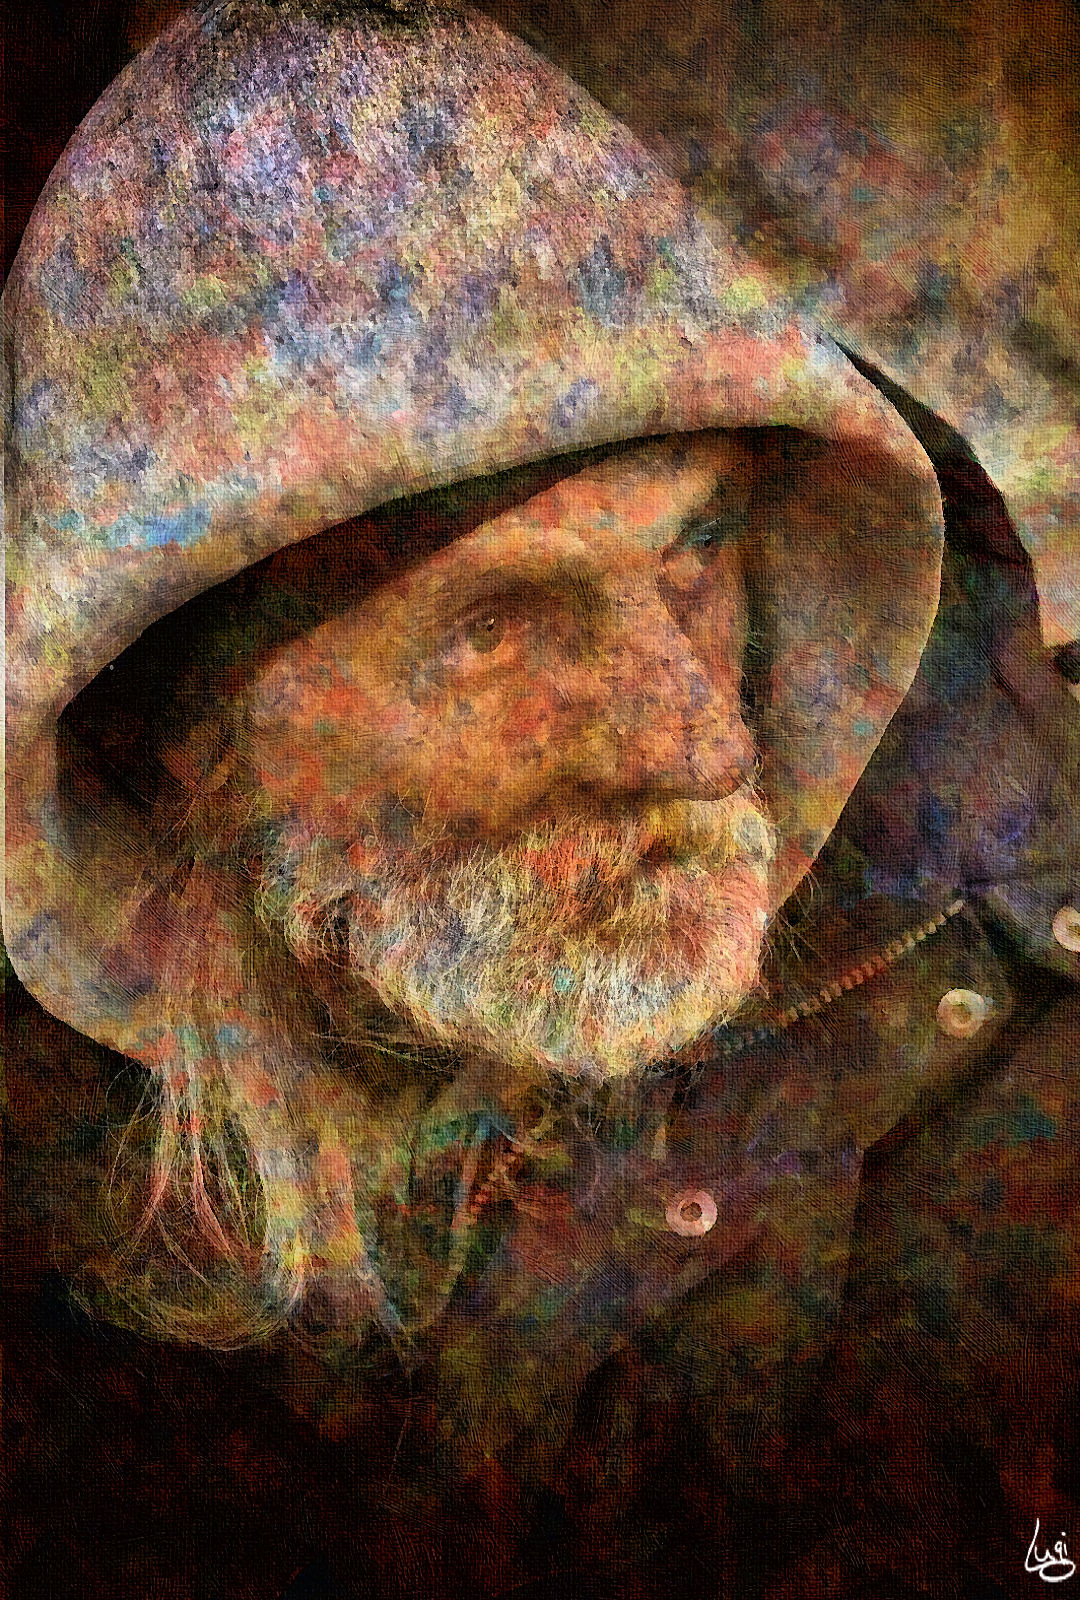 homeless-844210_1920_DAP_!PortraitPaint.jpg